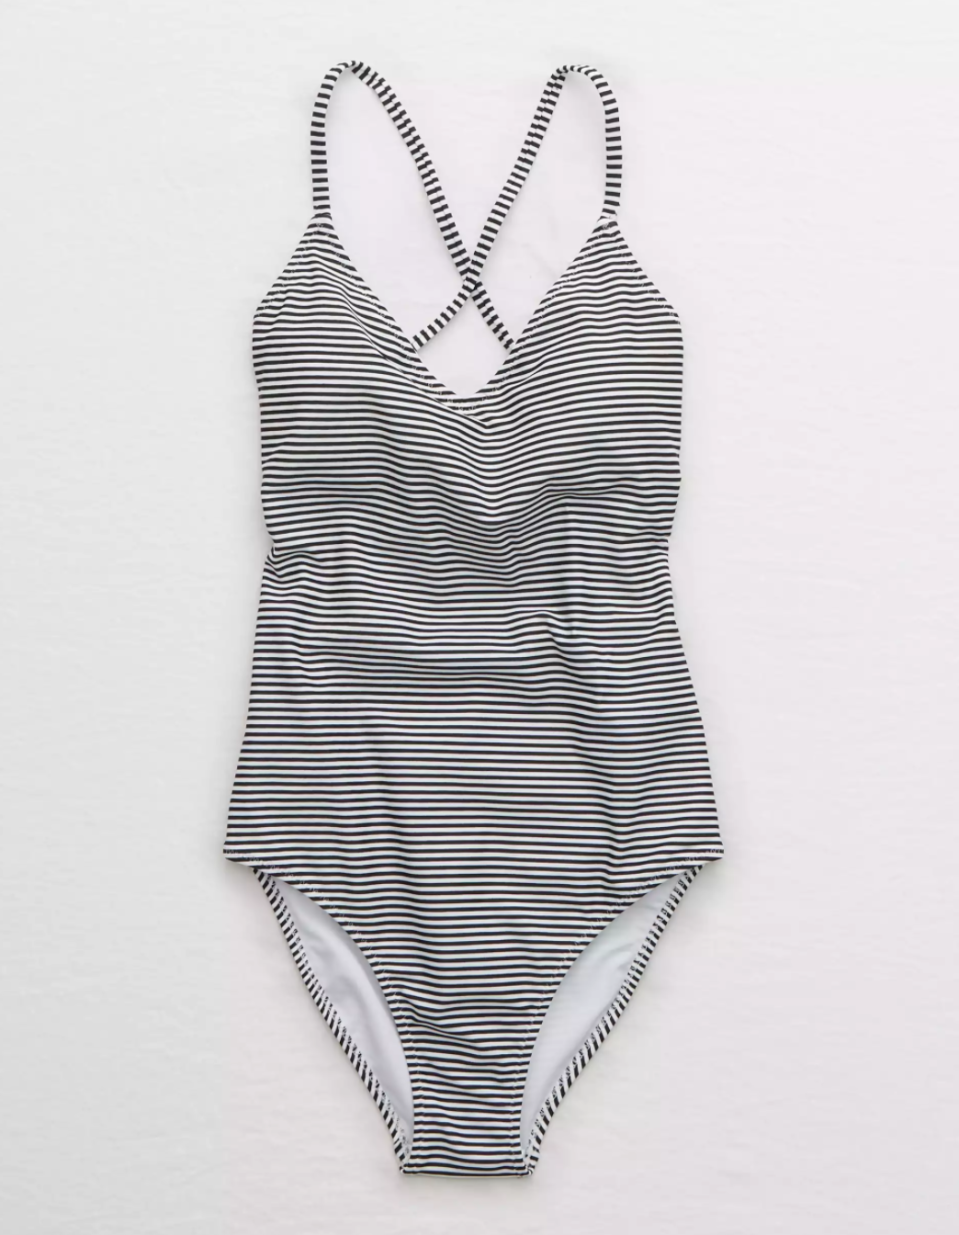 Strappy Back One Piece Swimsuit. Image via Aerie.